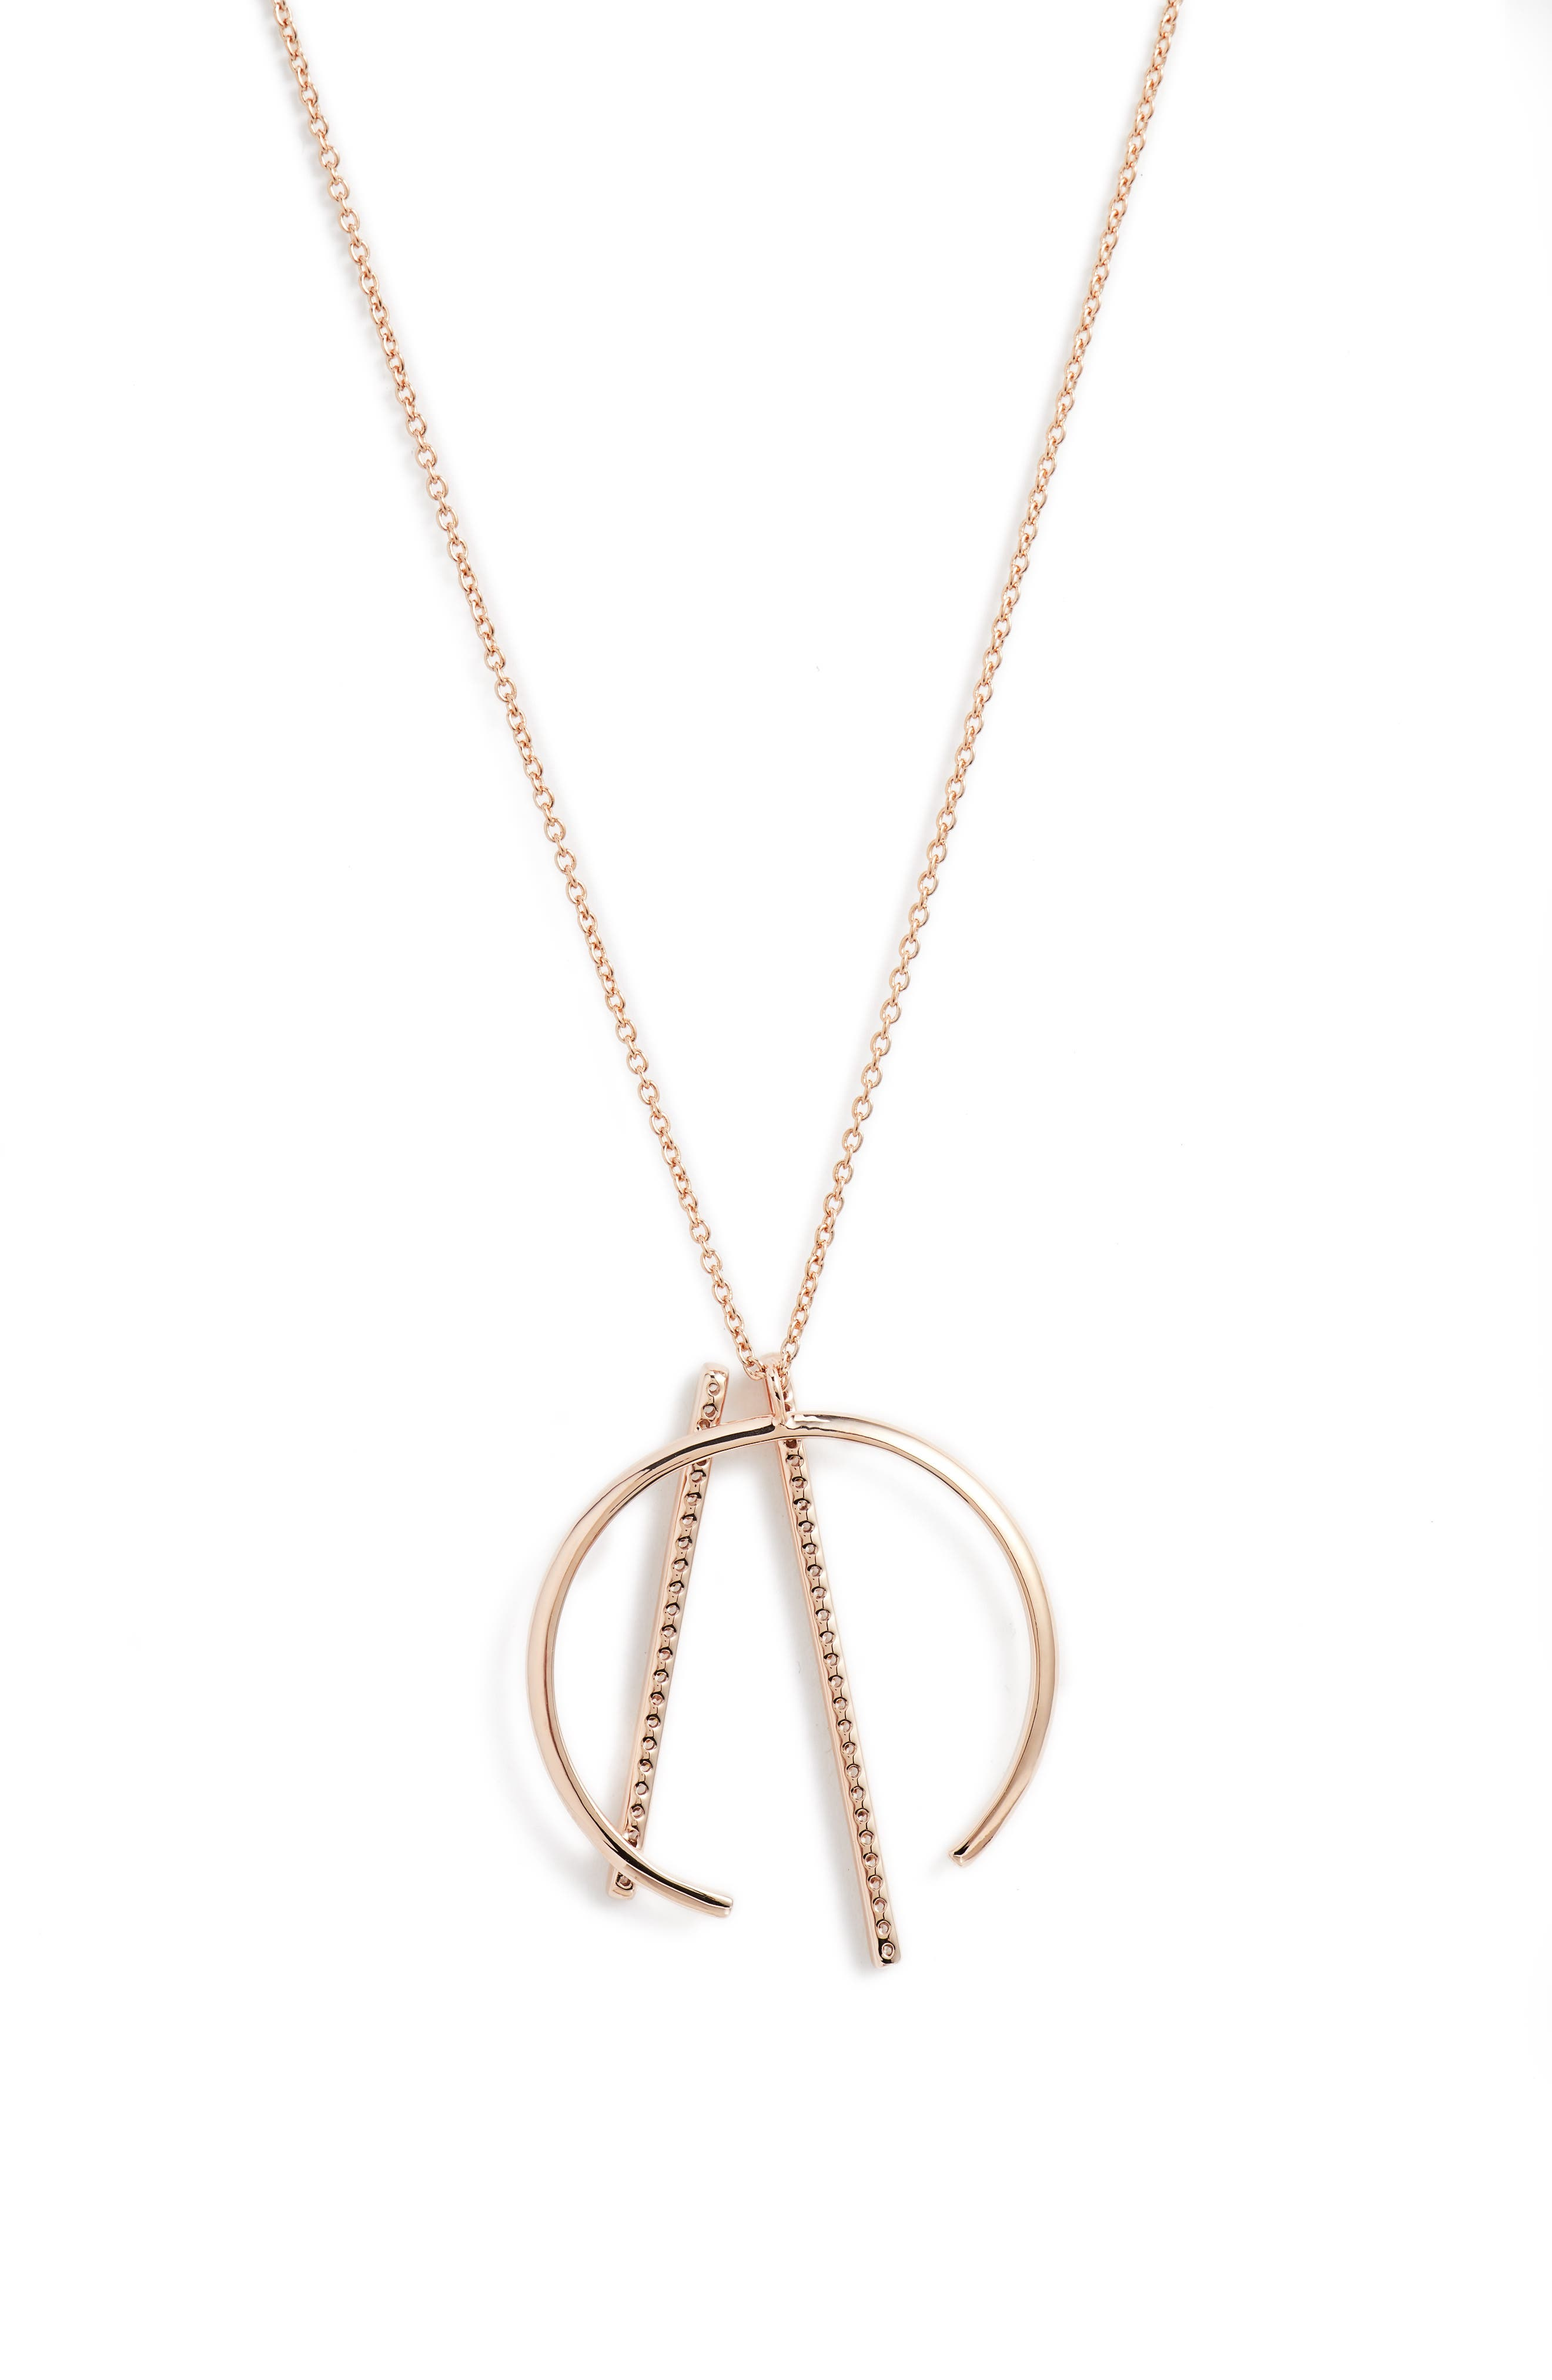 Neo Geo Pendant Necklace,                             Alternate thumbnail 2, color,                             ROSE GOLD